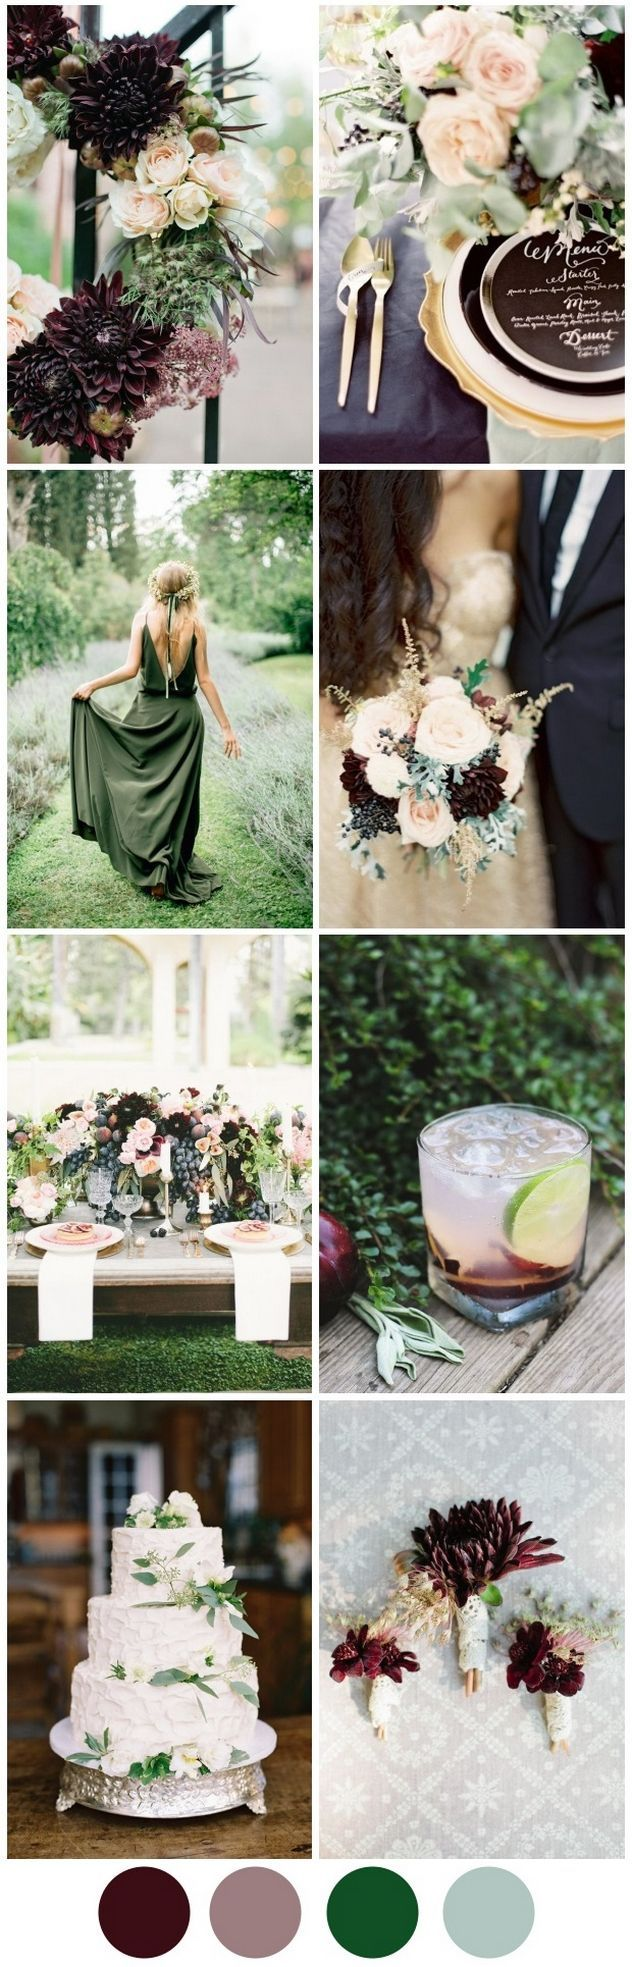 50+ Best Of Wedding Color Combination Ideas Trends 2017 https://bridalore.com/2017/04/09/50-best-of-wedding-color-combination-ideas-trends-2017/